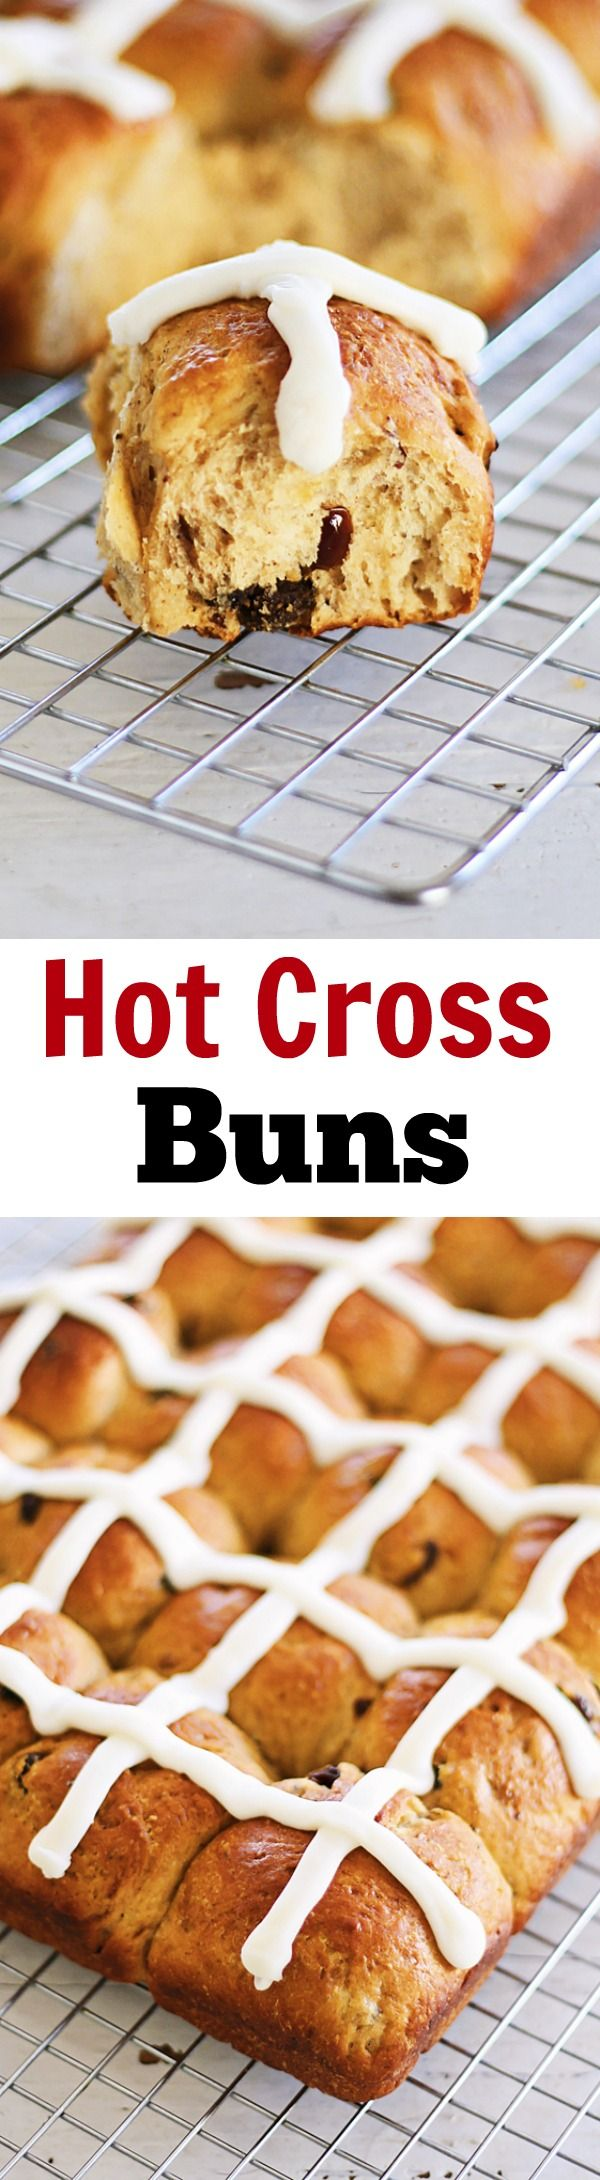 Hot Cross Buns – soft, fluff and pillowy hot cross buns spiced with cinnamon, cloves and loaded with dried fruits. So good you can't stop eating!! | rasamalaysia.com